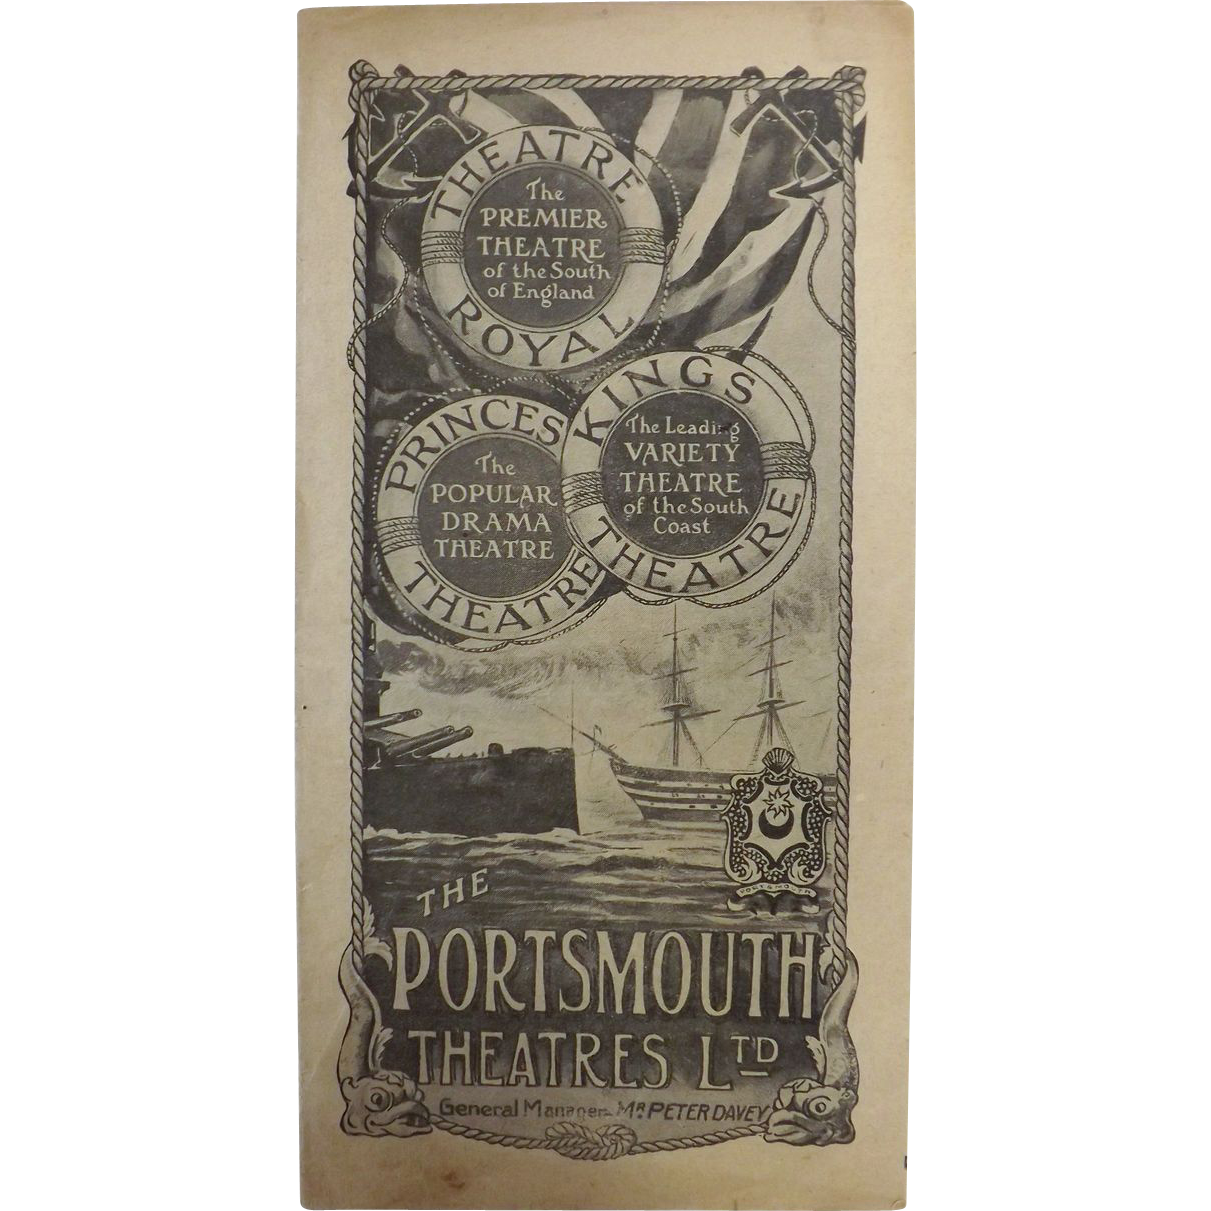 Theatre Programme 'The Portsmouth Theatres Ltd' - 1917